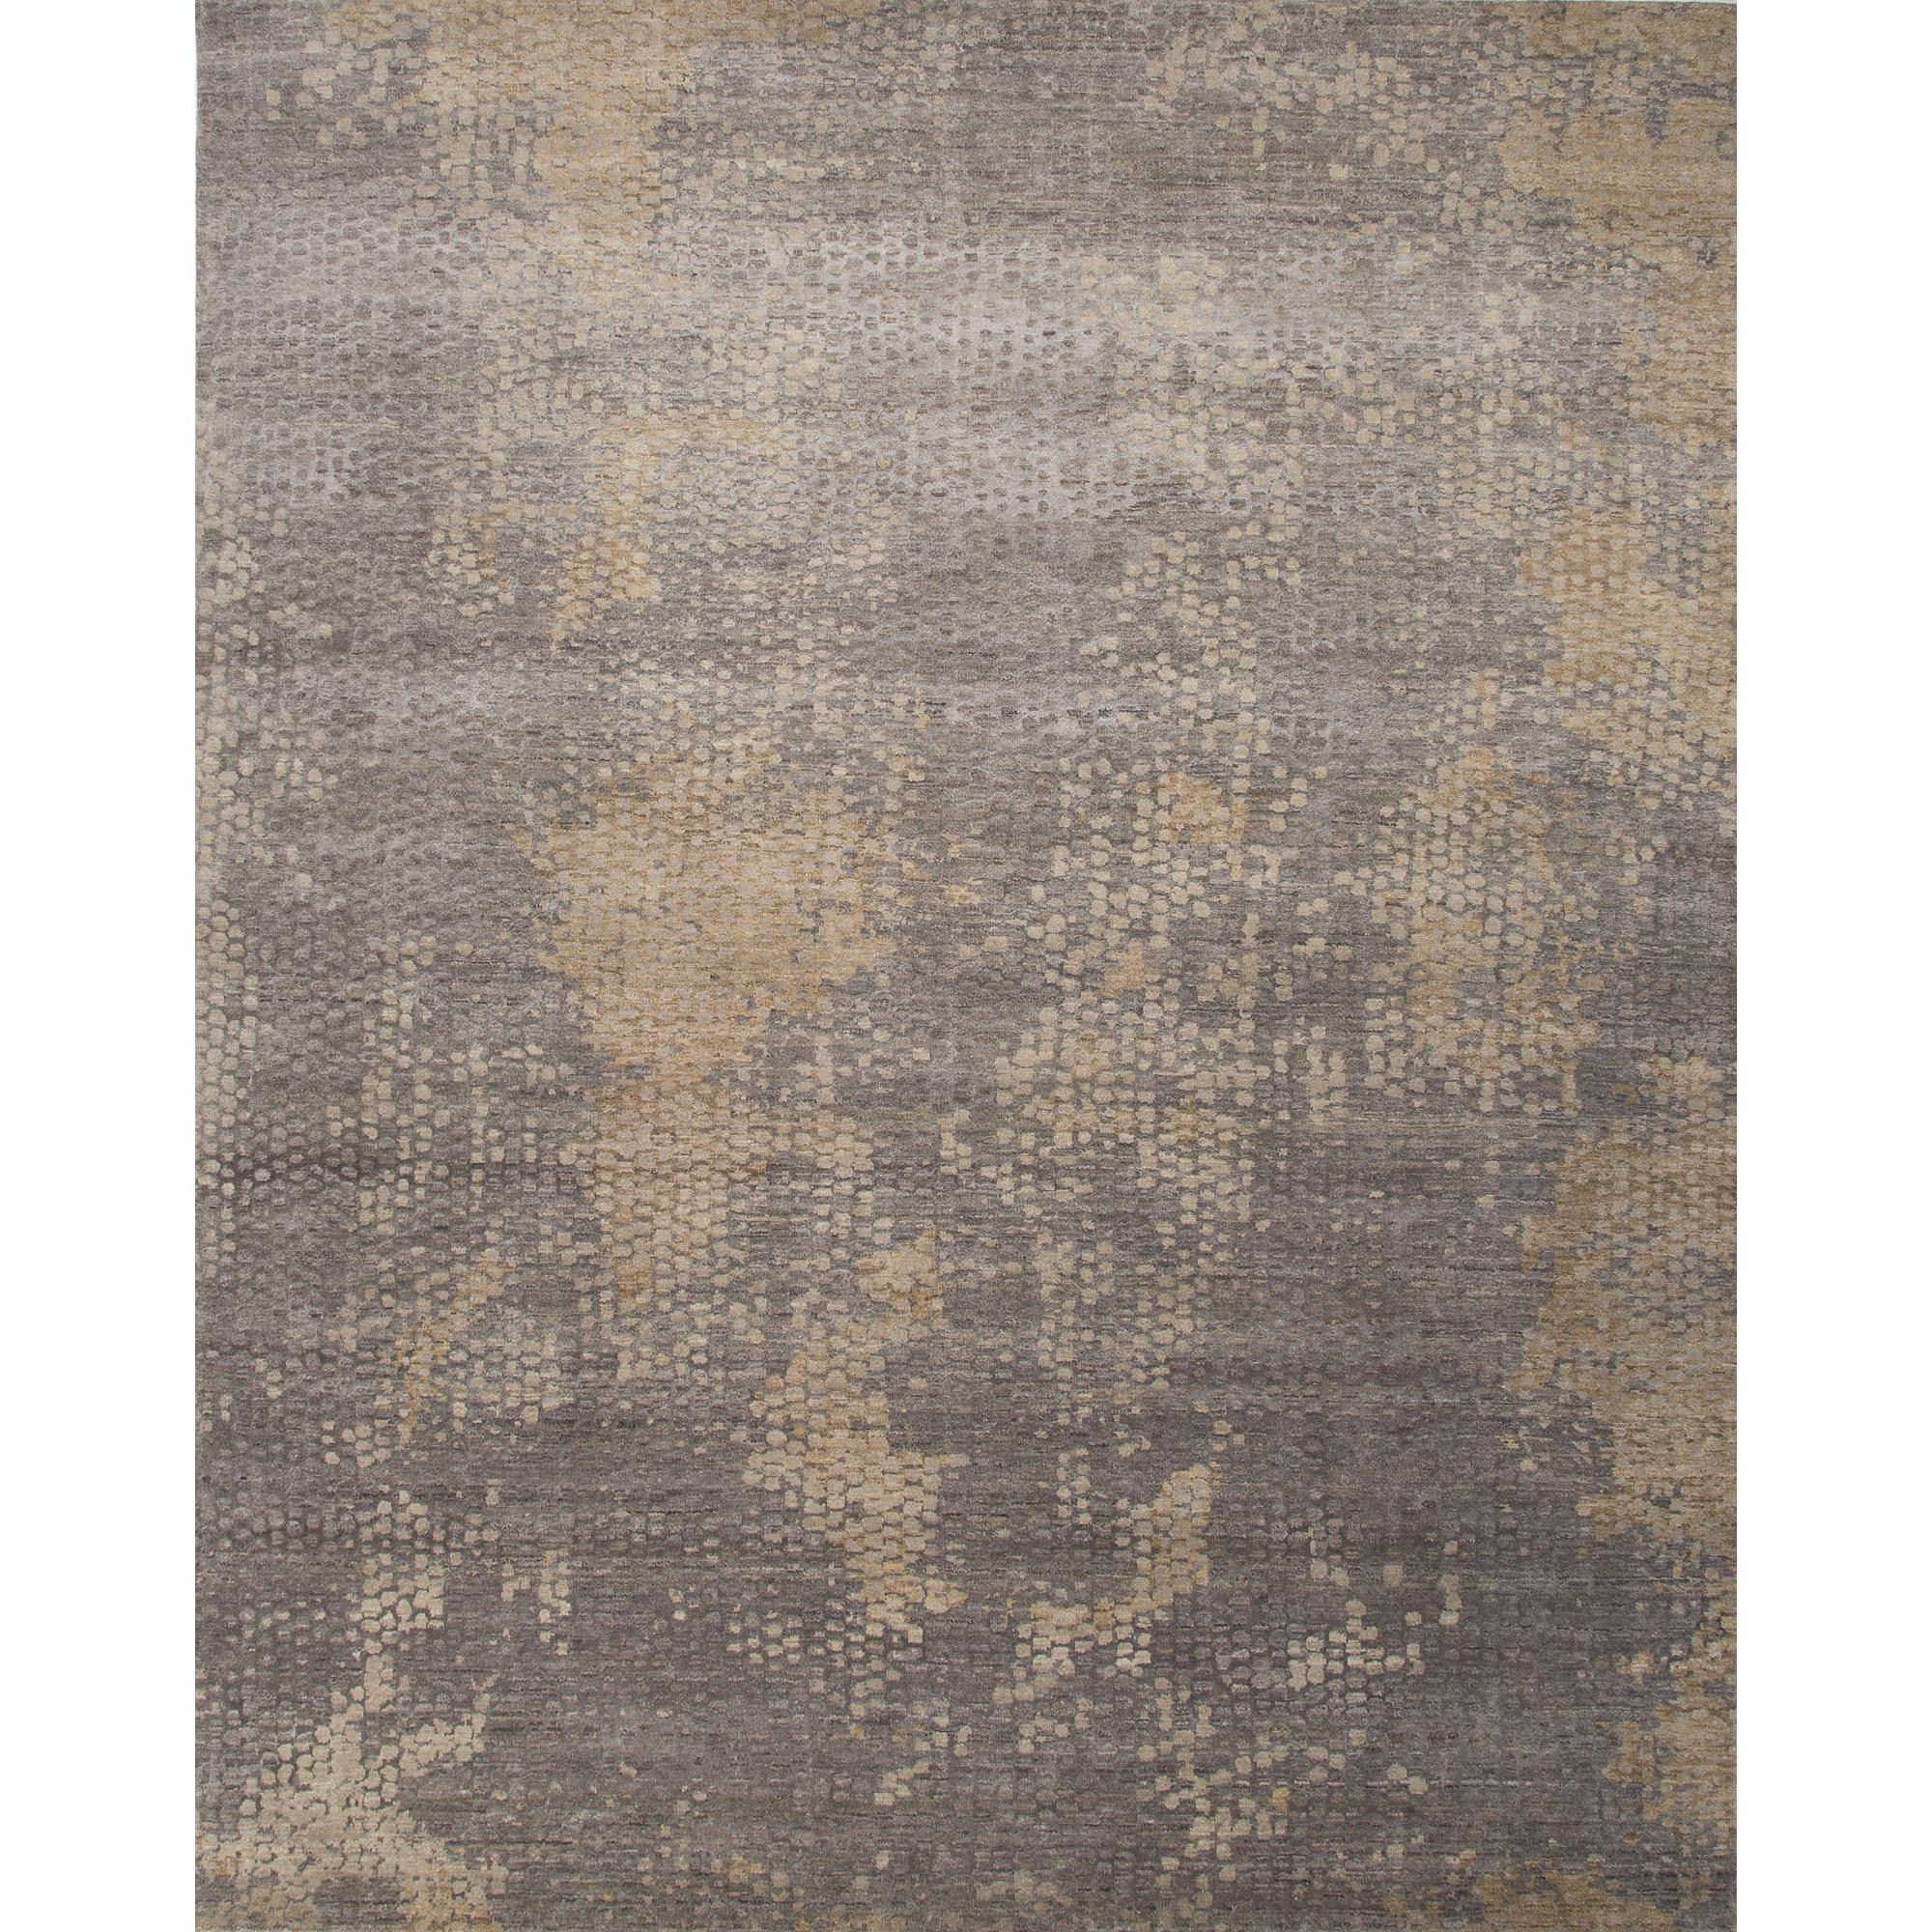 JAIPUR Rugs Chaos Theory By Kavi 10 x 14 Rug - Item Number: RUG116985